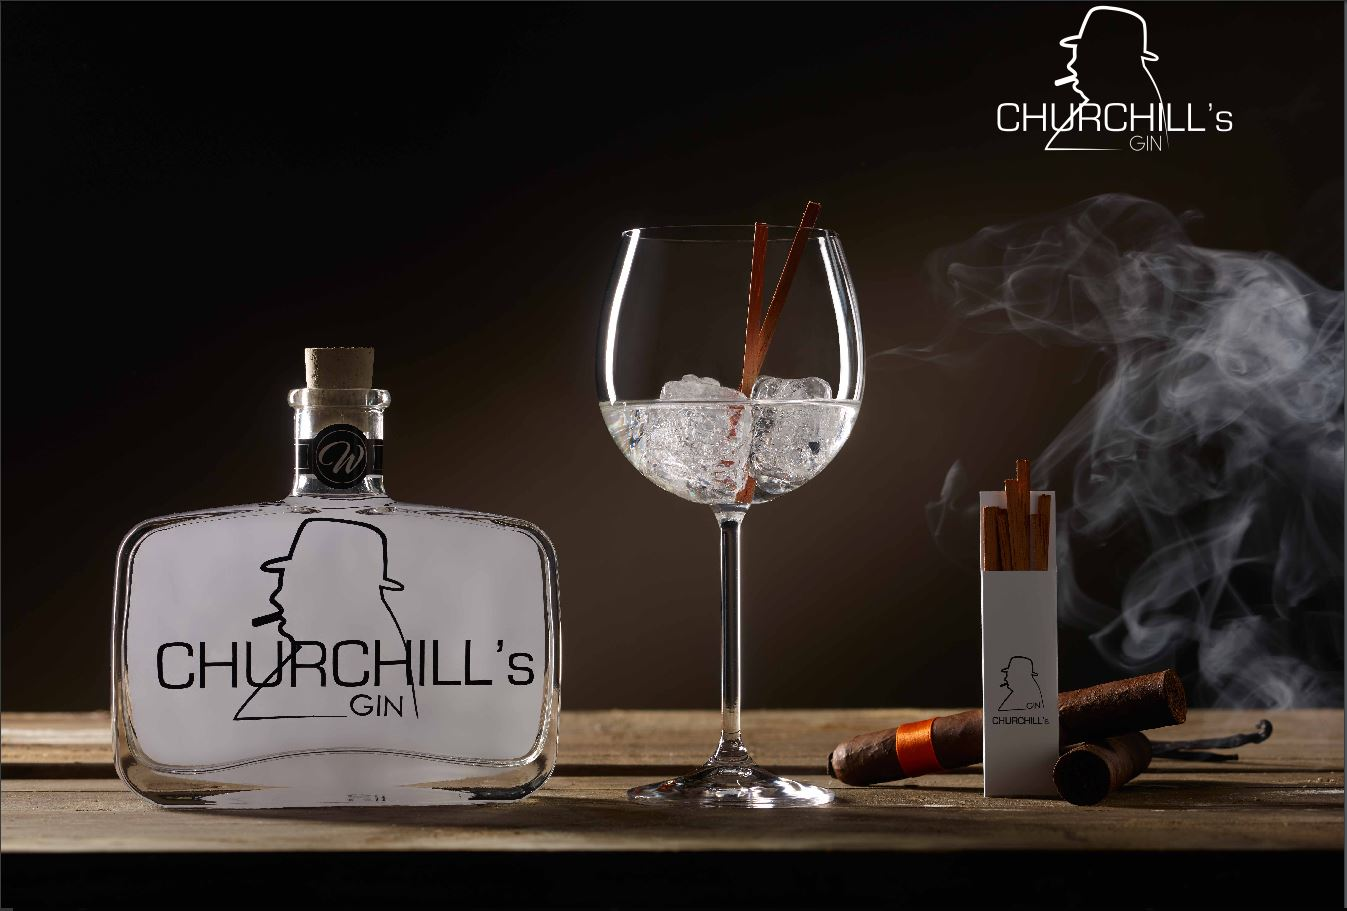 CHURCHILL'S GIN